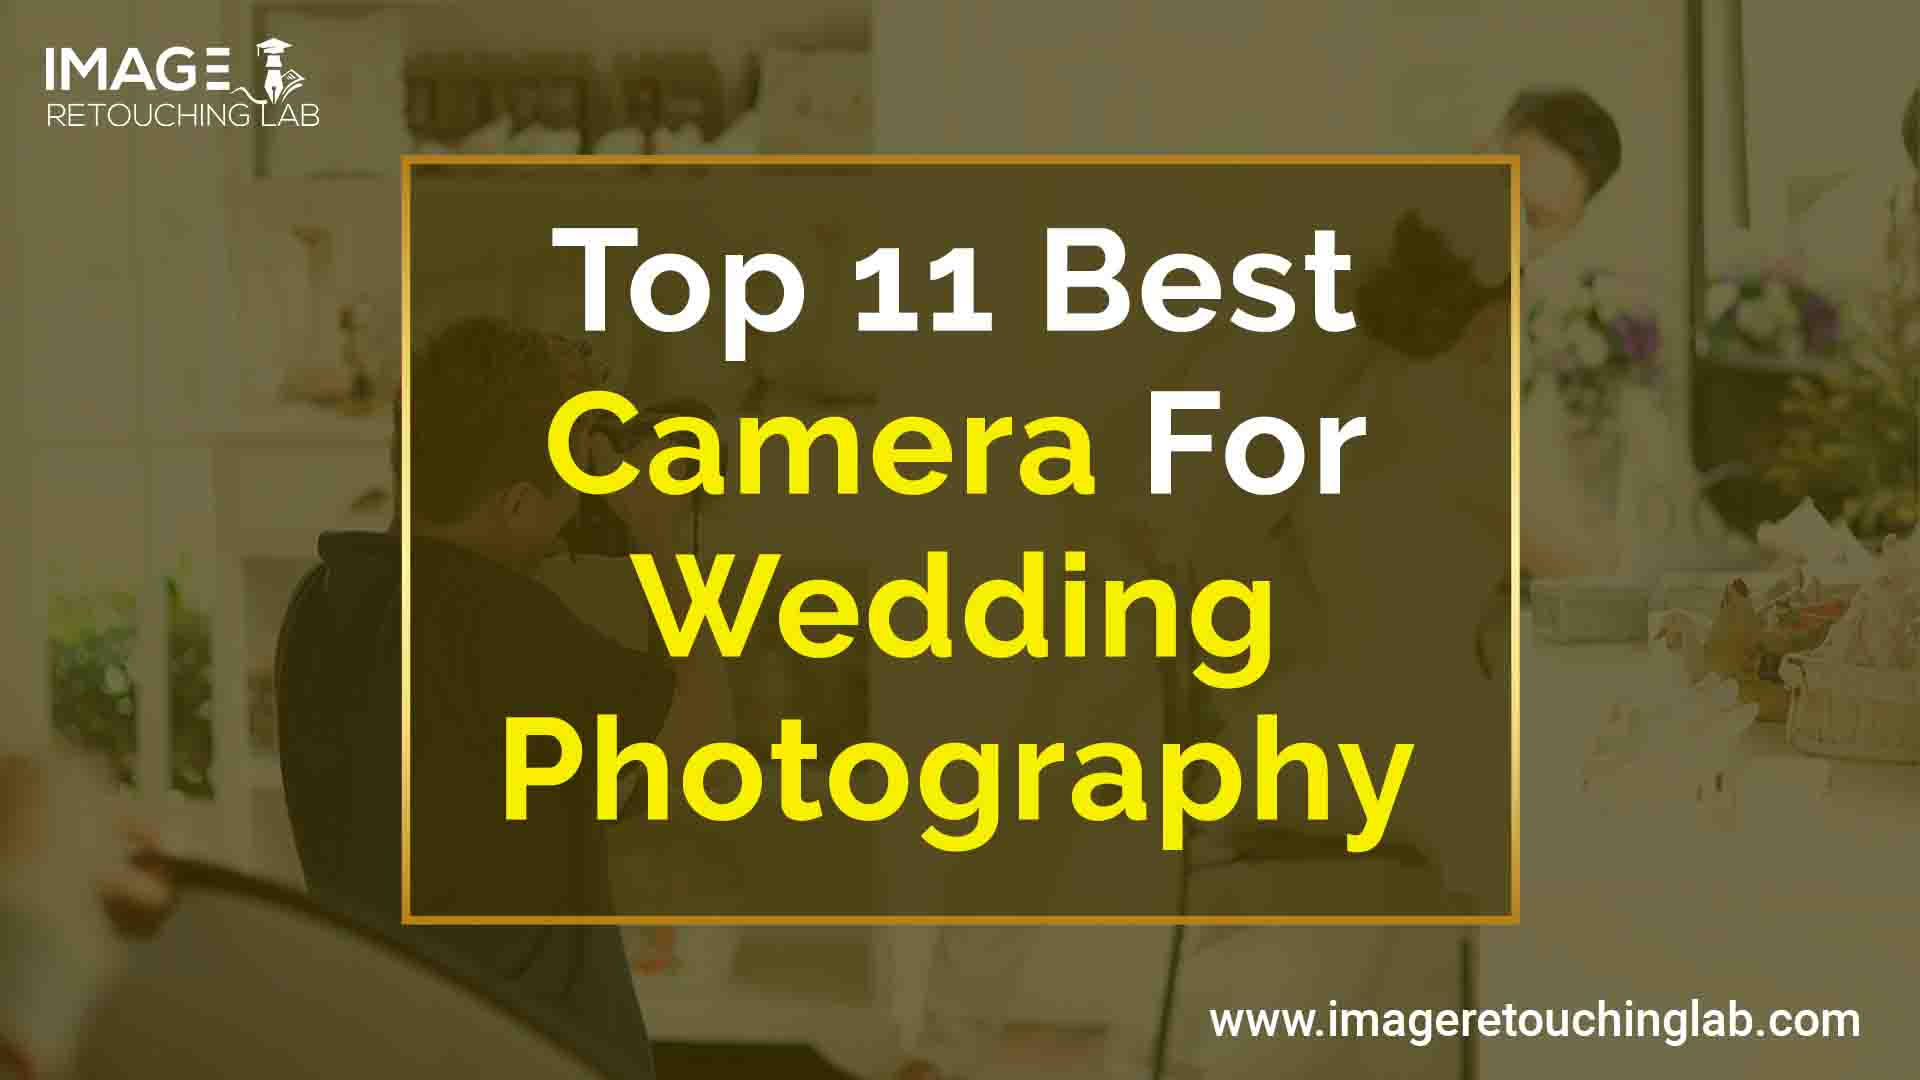 Top 11 Best Camera For Wedding Photography